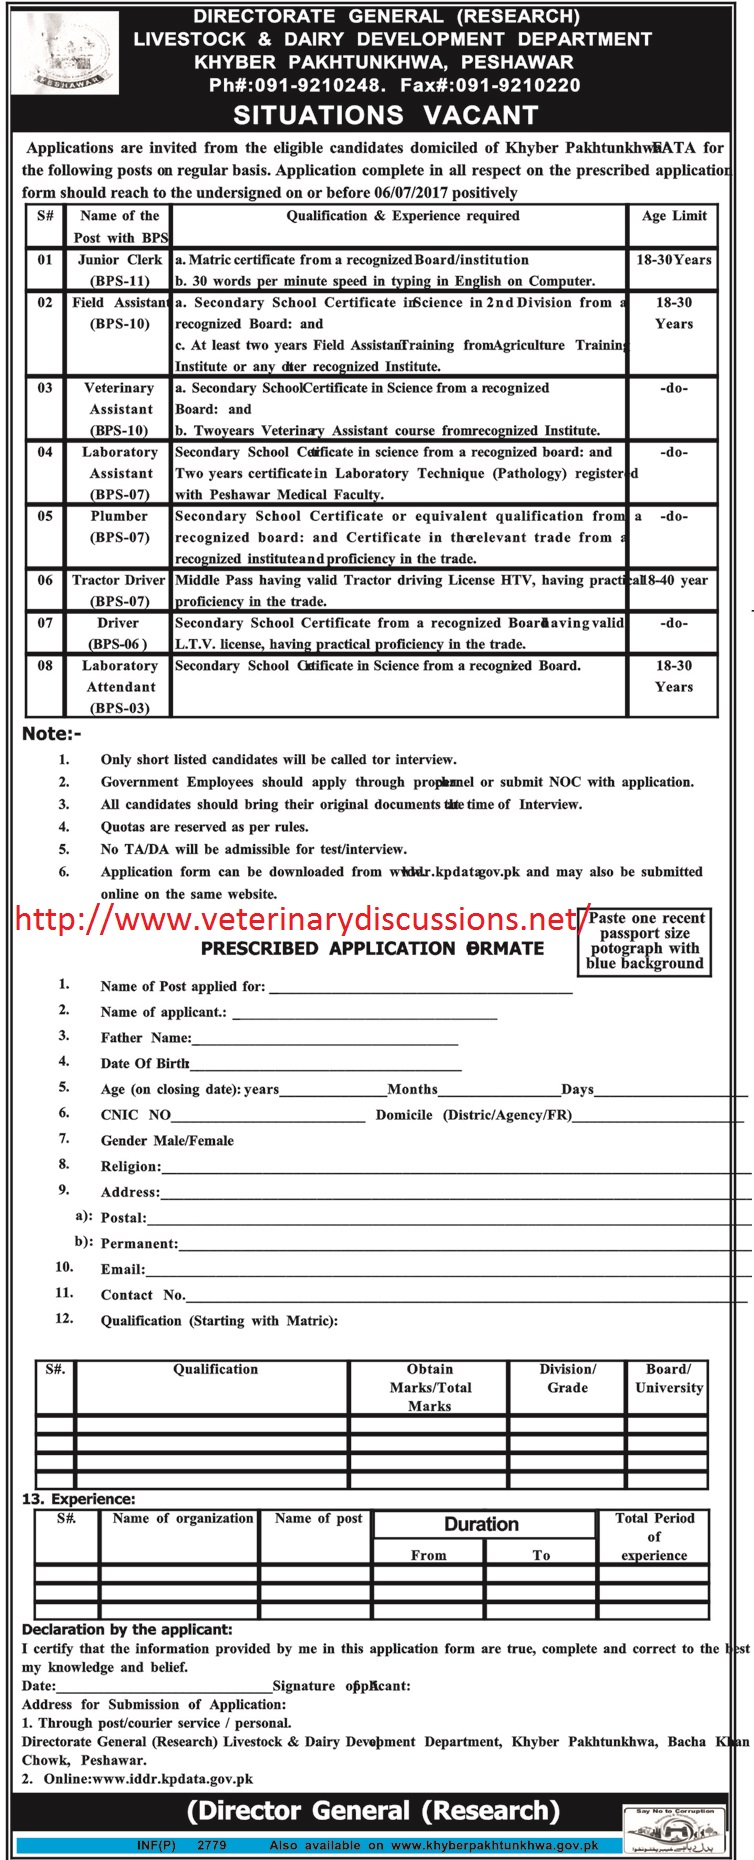 Veterinary Assistants required by KPK